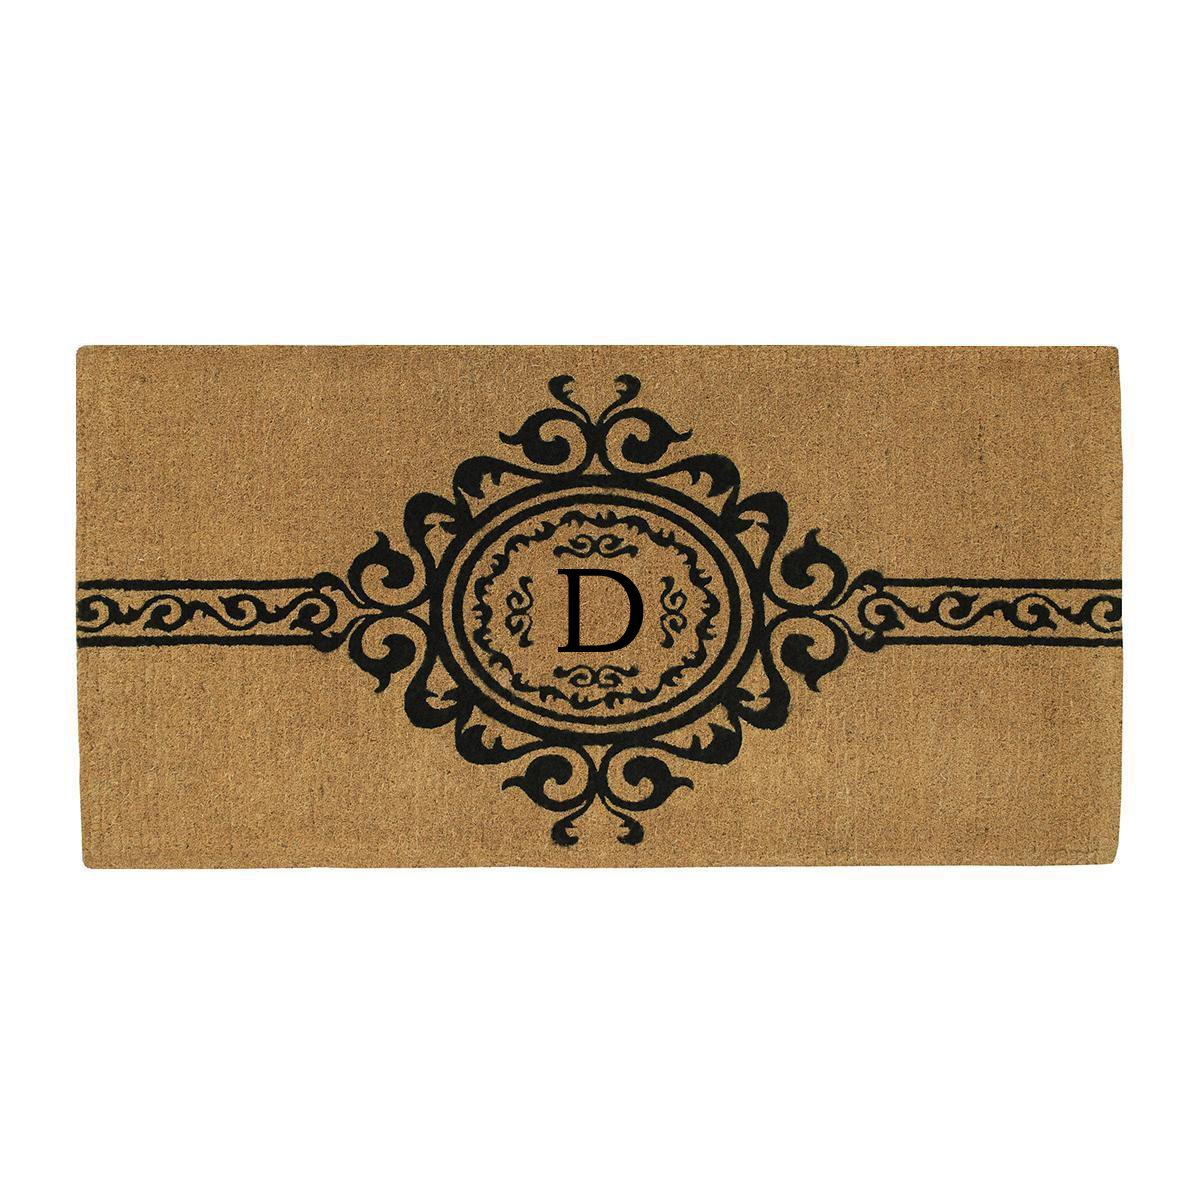 Home & More 180073672D Garbo Extra-thick Doormat, 36'' x 72'' x 1.50'', Monogrammed Letter D, Natural/Black